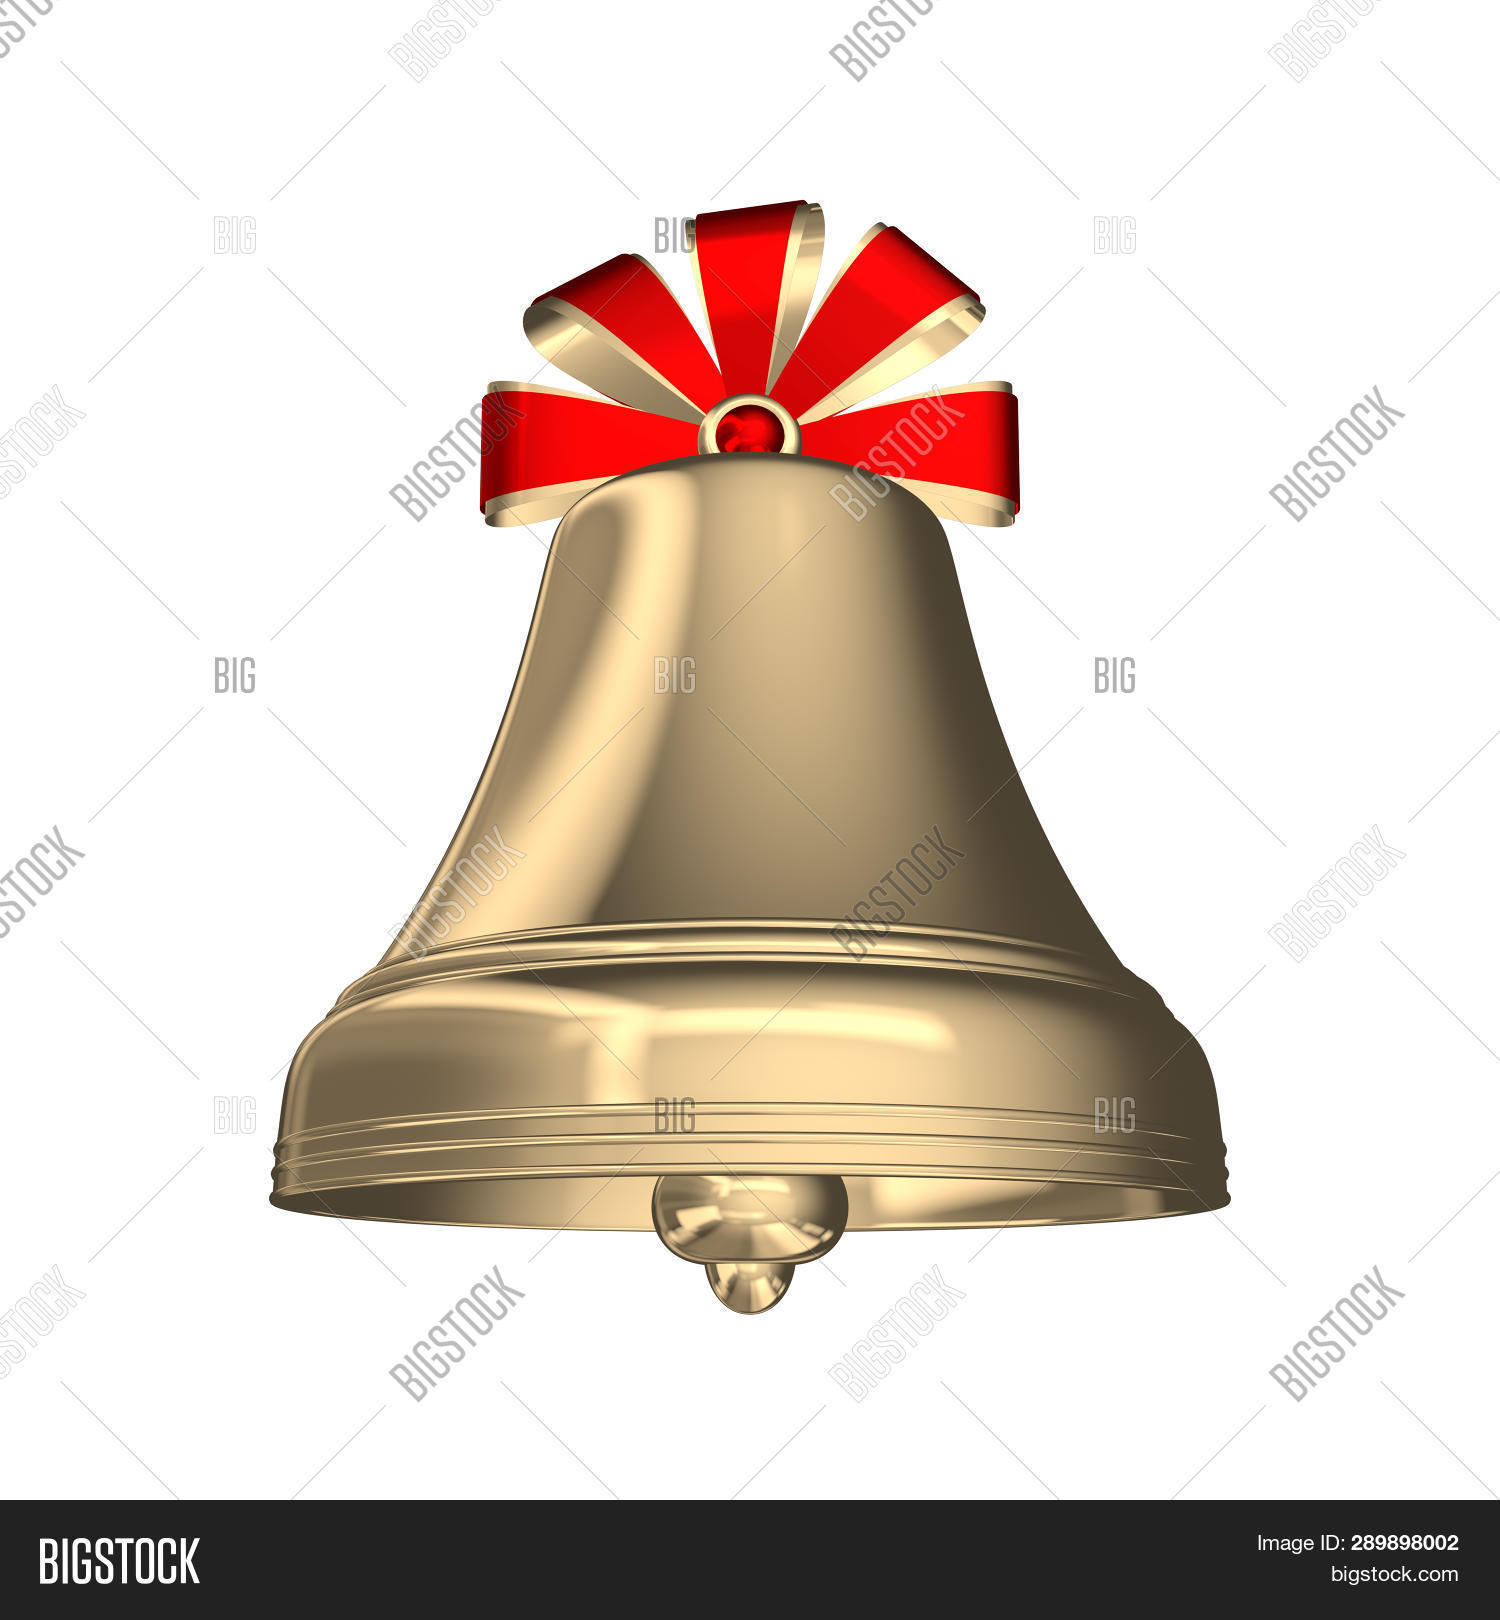 d18192f55 Golden Christmas Bell With Red Ribbons Isolated On White Background.  Christmas Symbol, School Bell